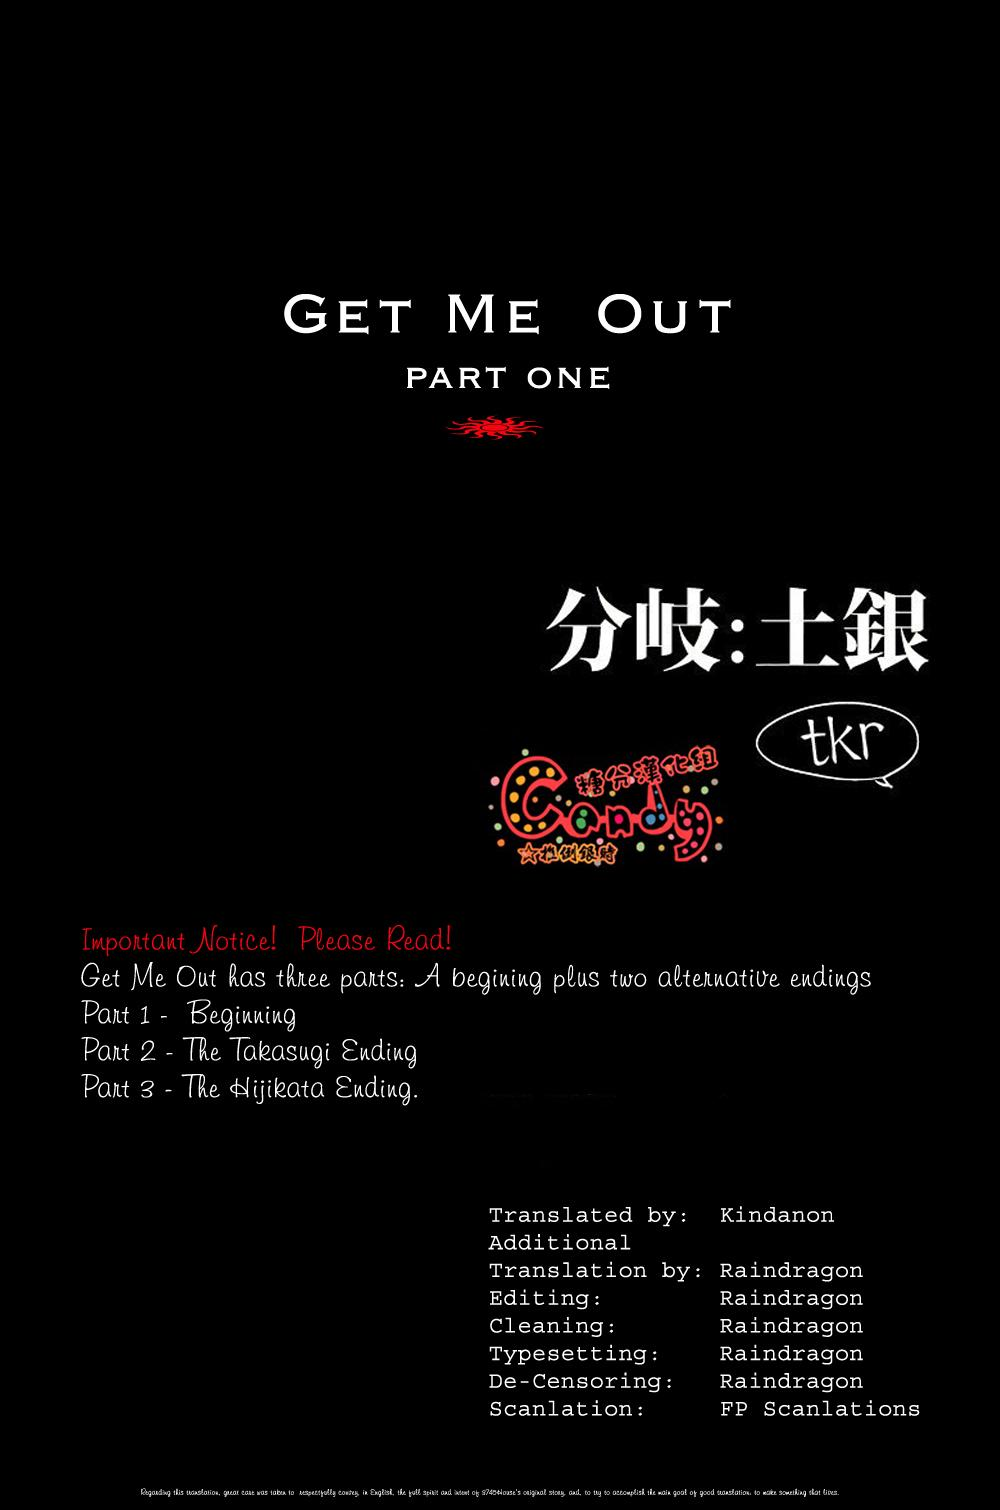 GET ME OUT 1